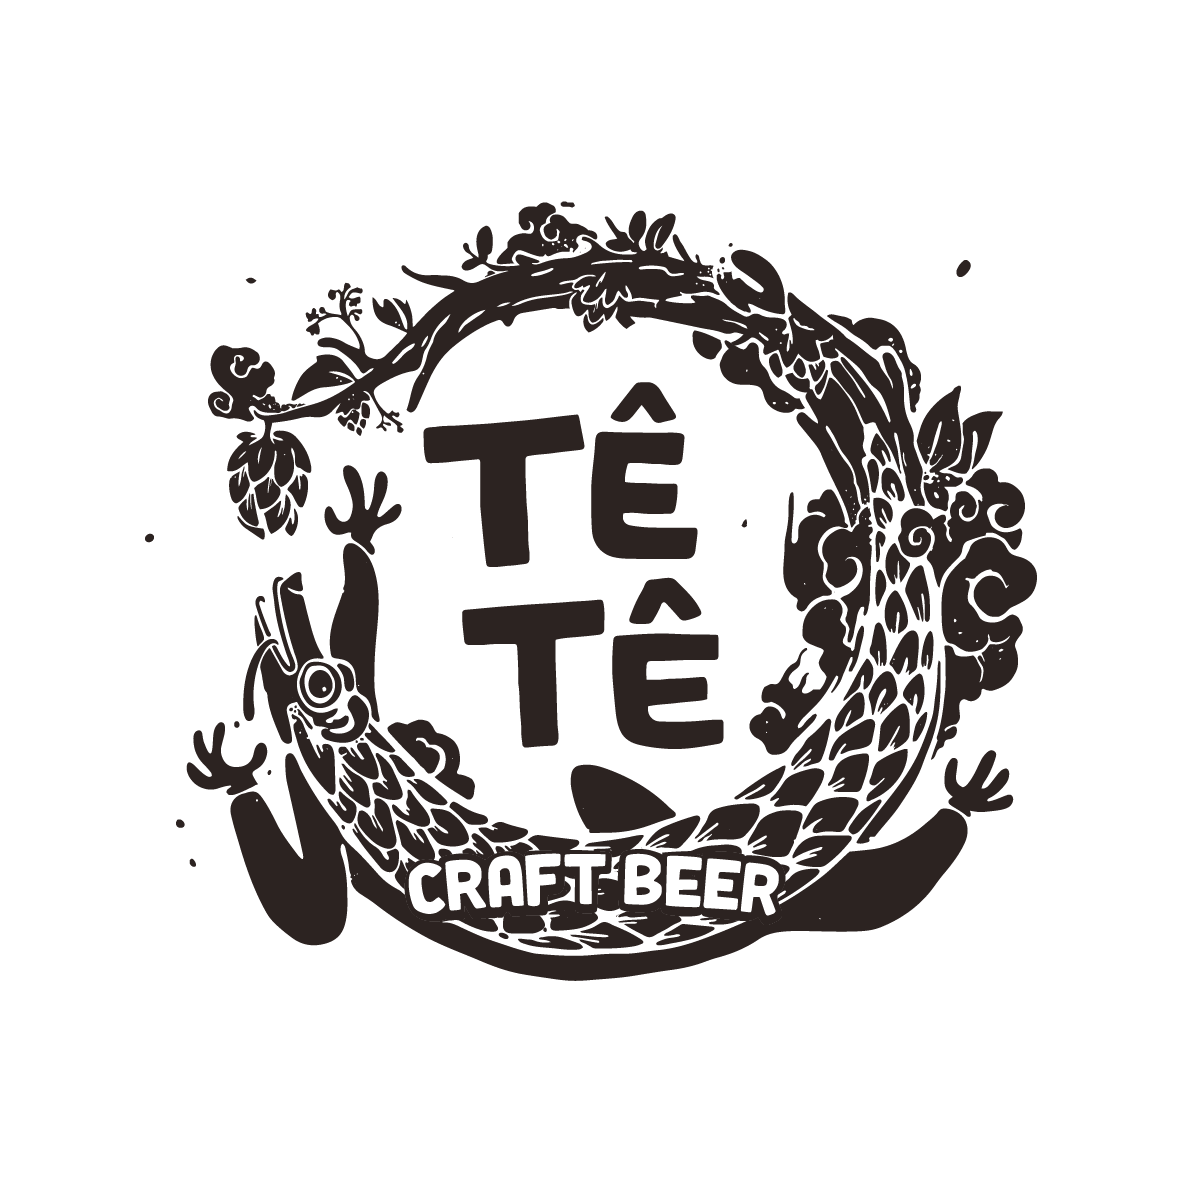 Tê Tê Craft Beer - Tê Tê Brewing is inspired by the idea of classic craft beers with a twist for Vietnamese culture and climate. Our beer is unfiltered and unpasteurized, keeping all the good stuff inside.